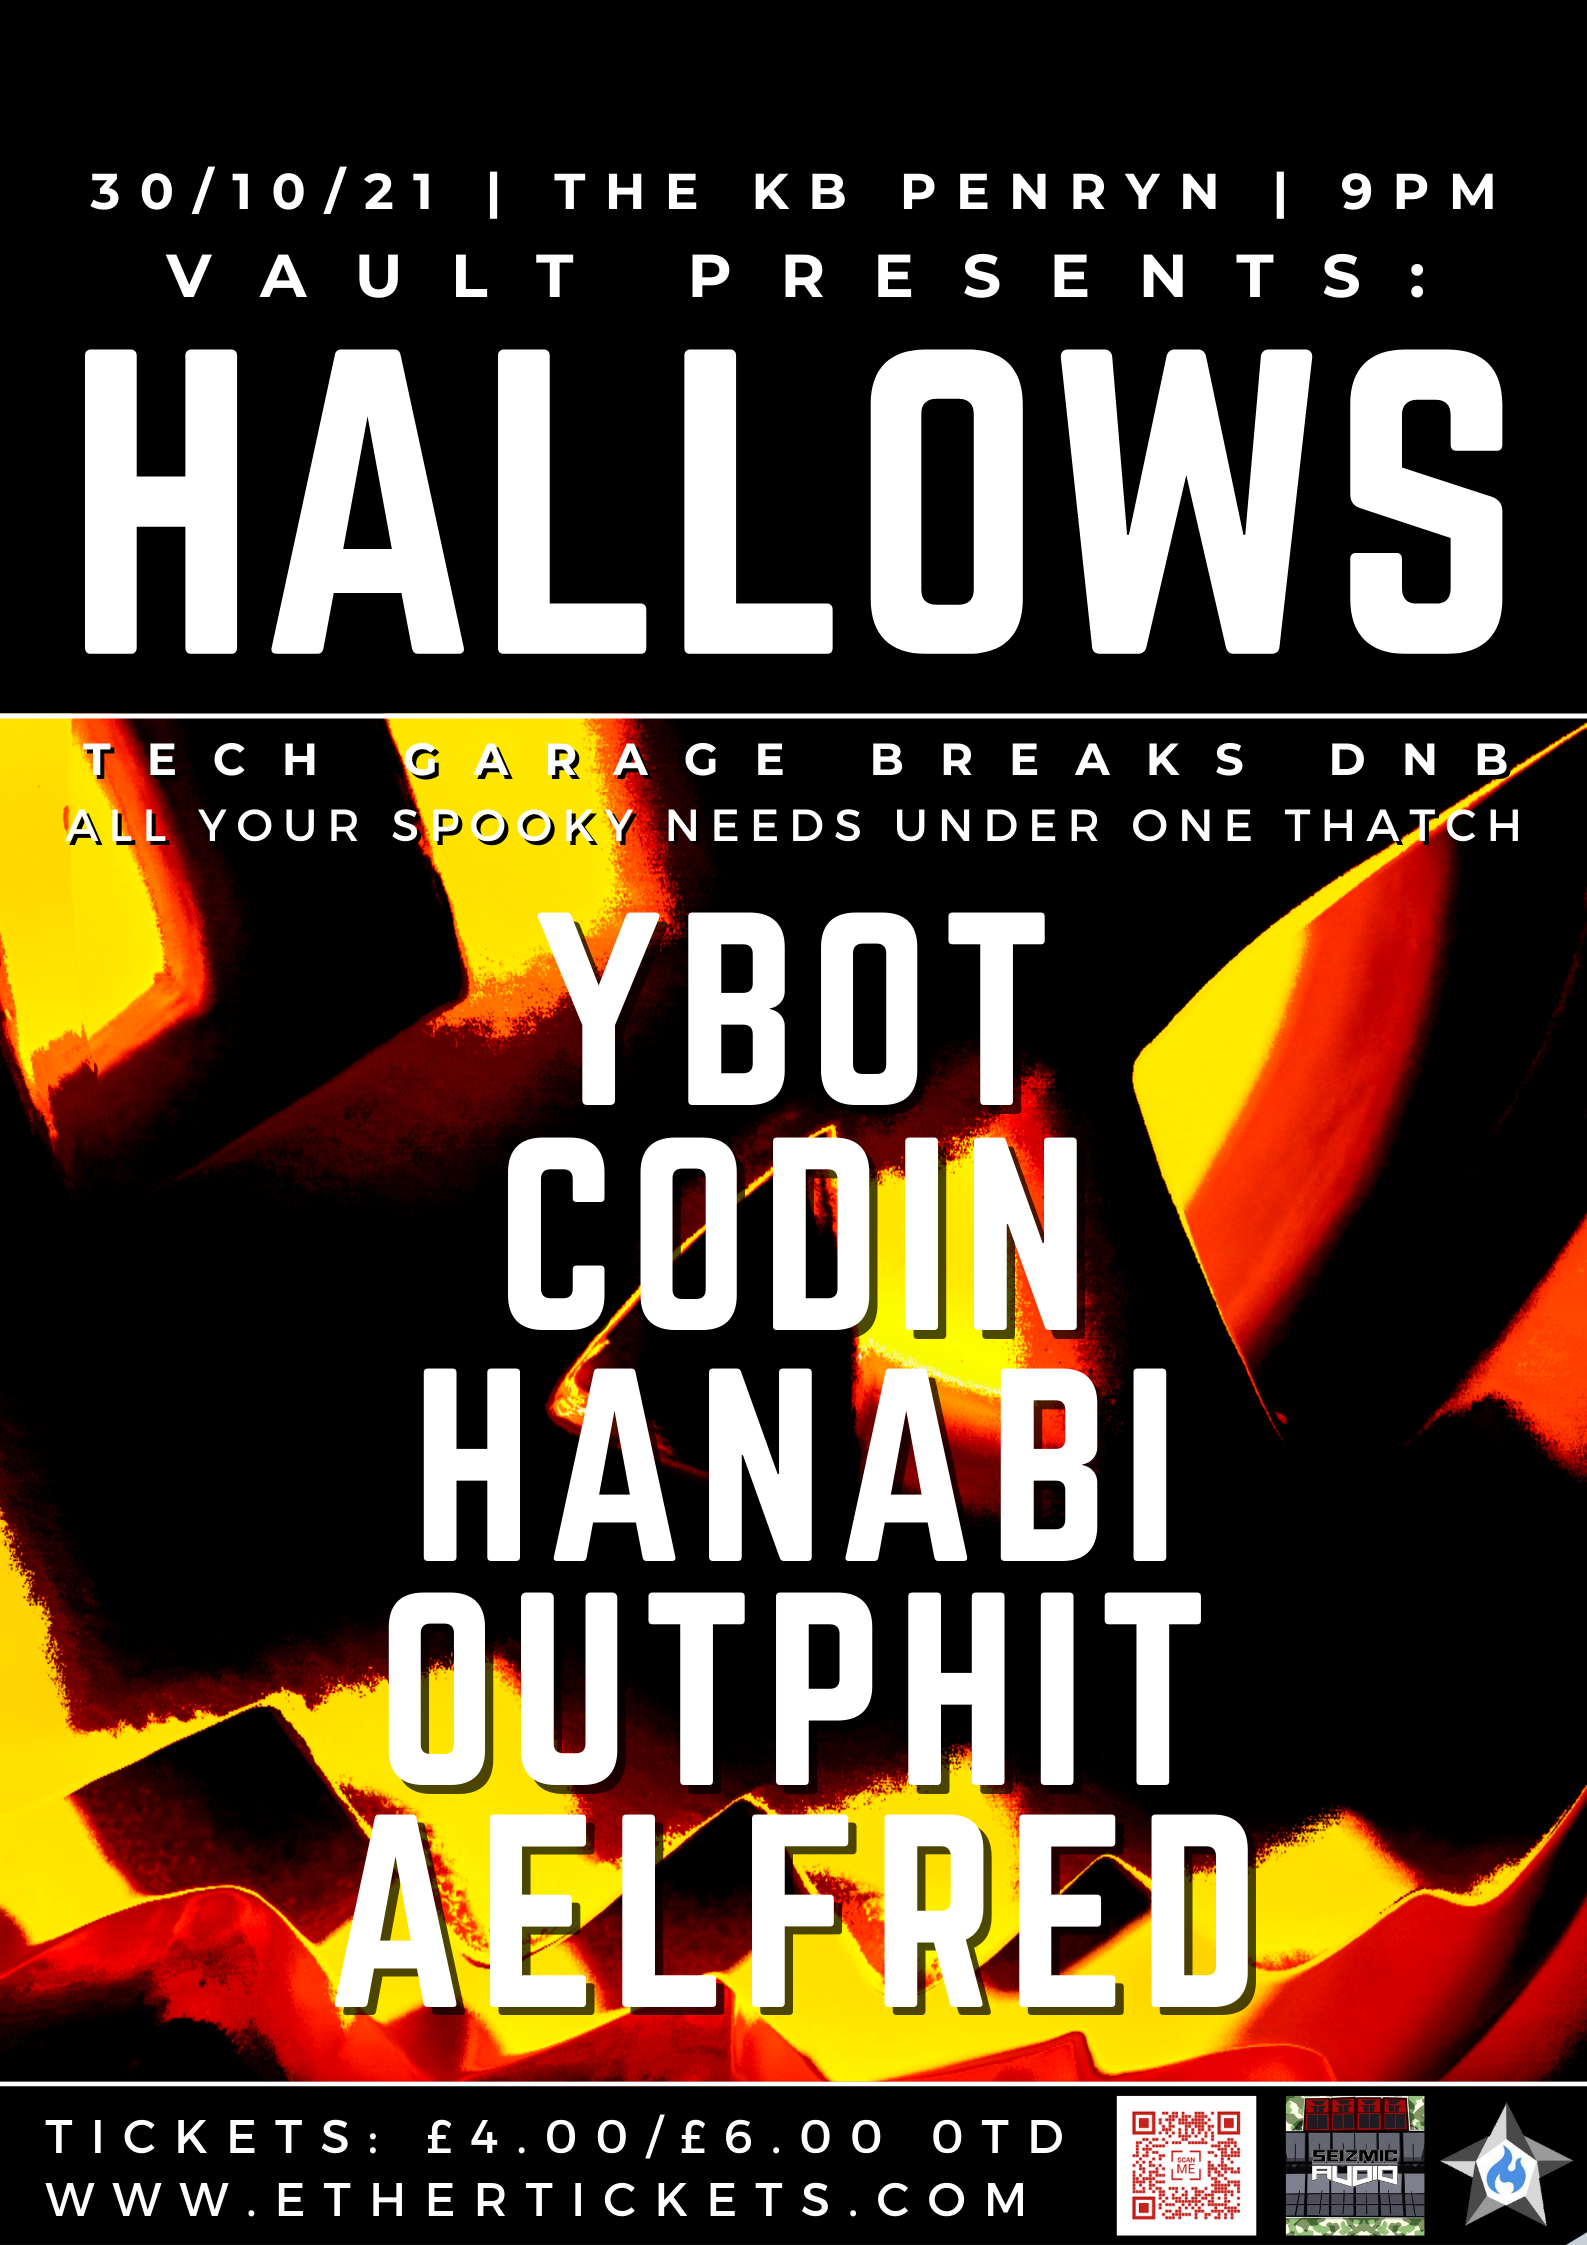 Event Poster For VAULT: HALLOWS EVE